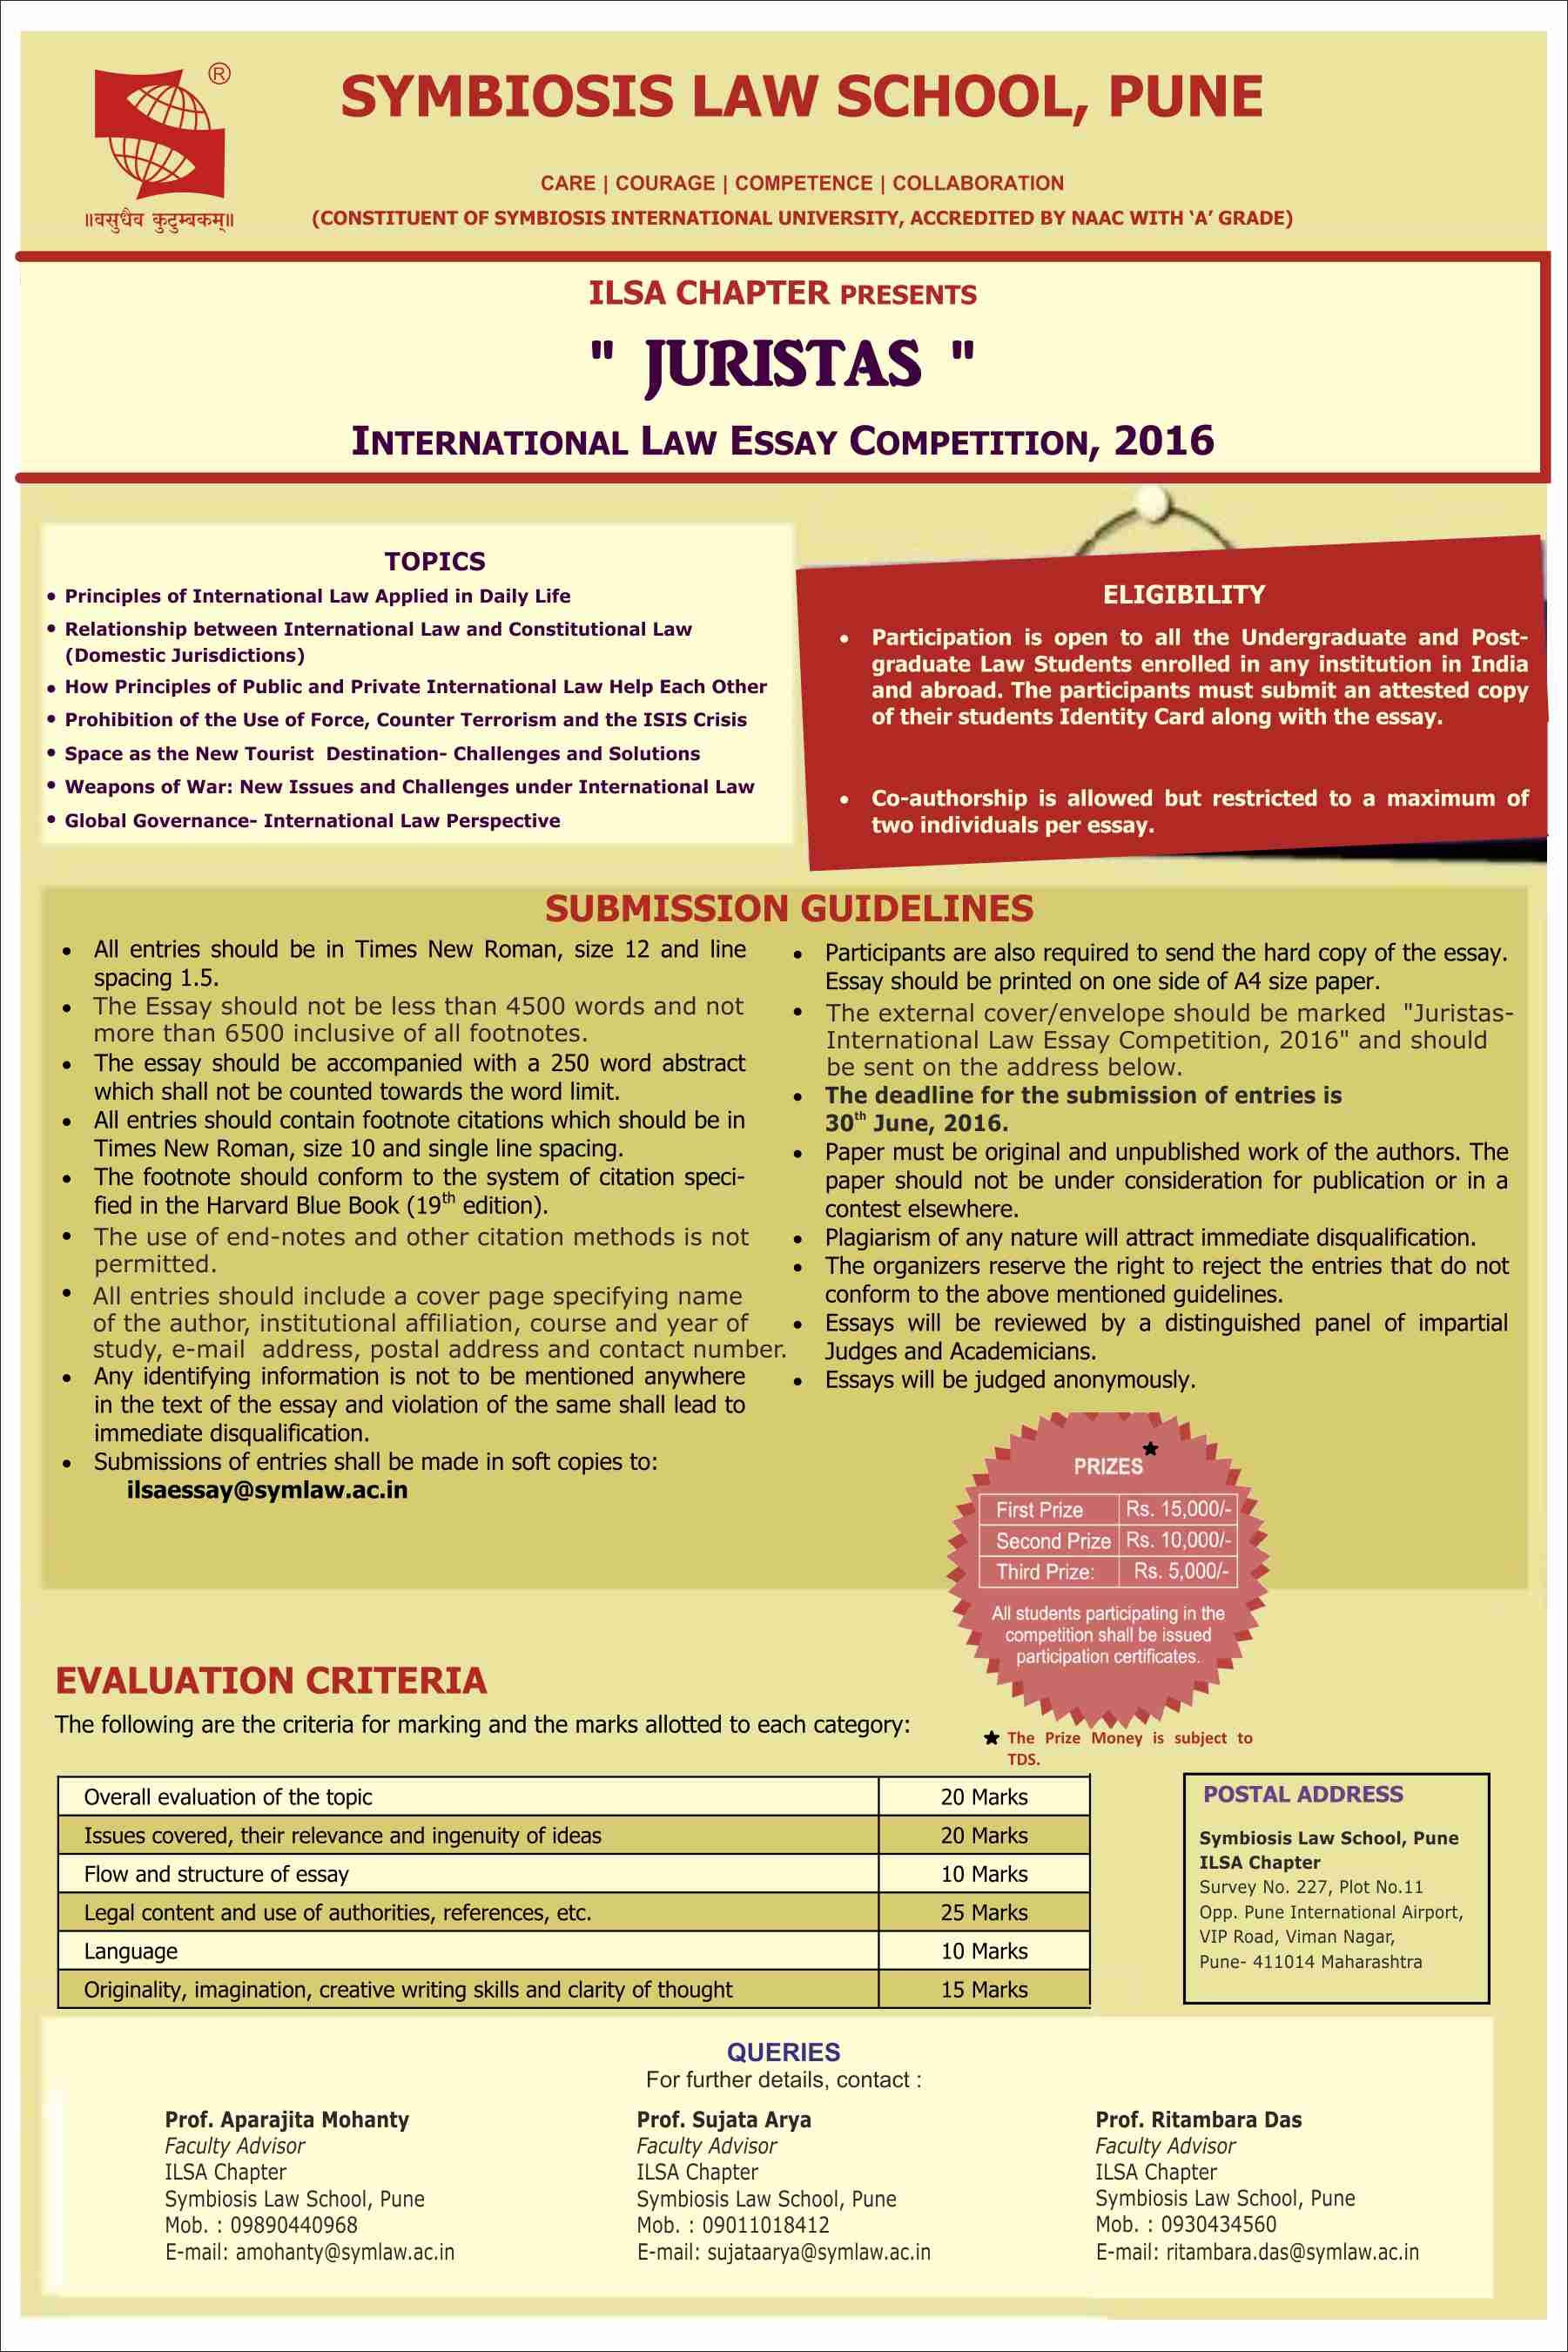 essay competition archives  sls pune s juristas international law essay competition 2016 submit by 30 prizes worth rs 30 000